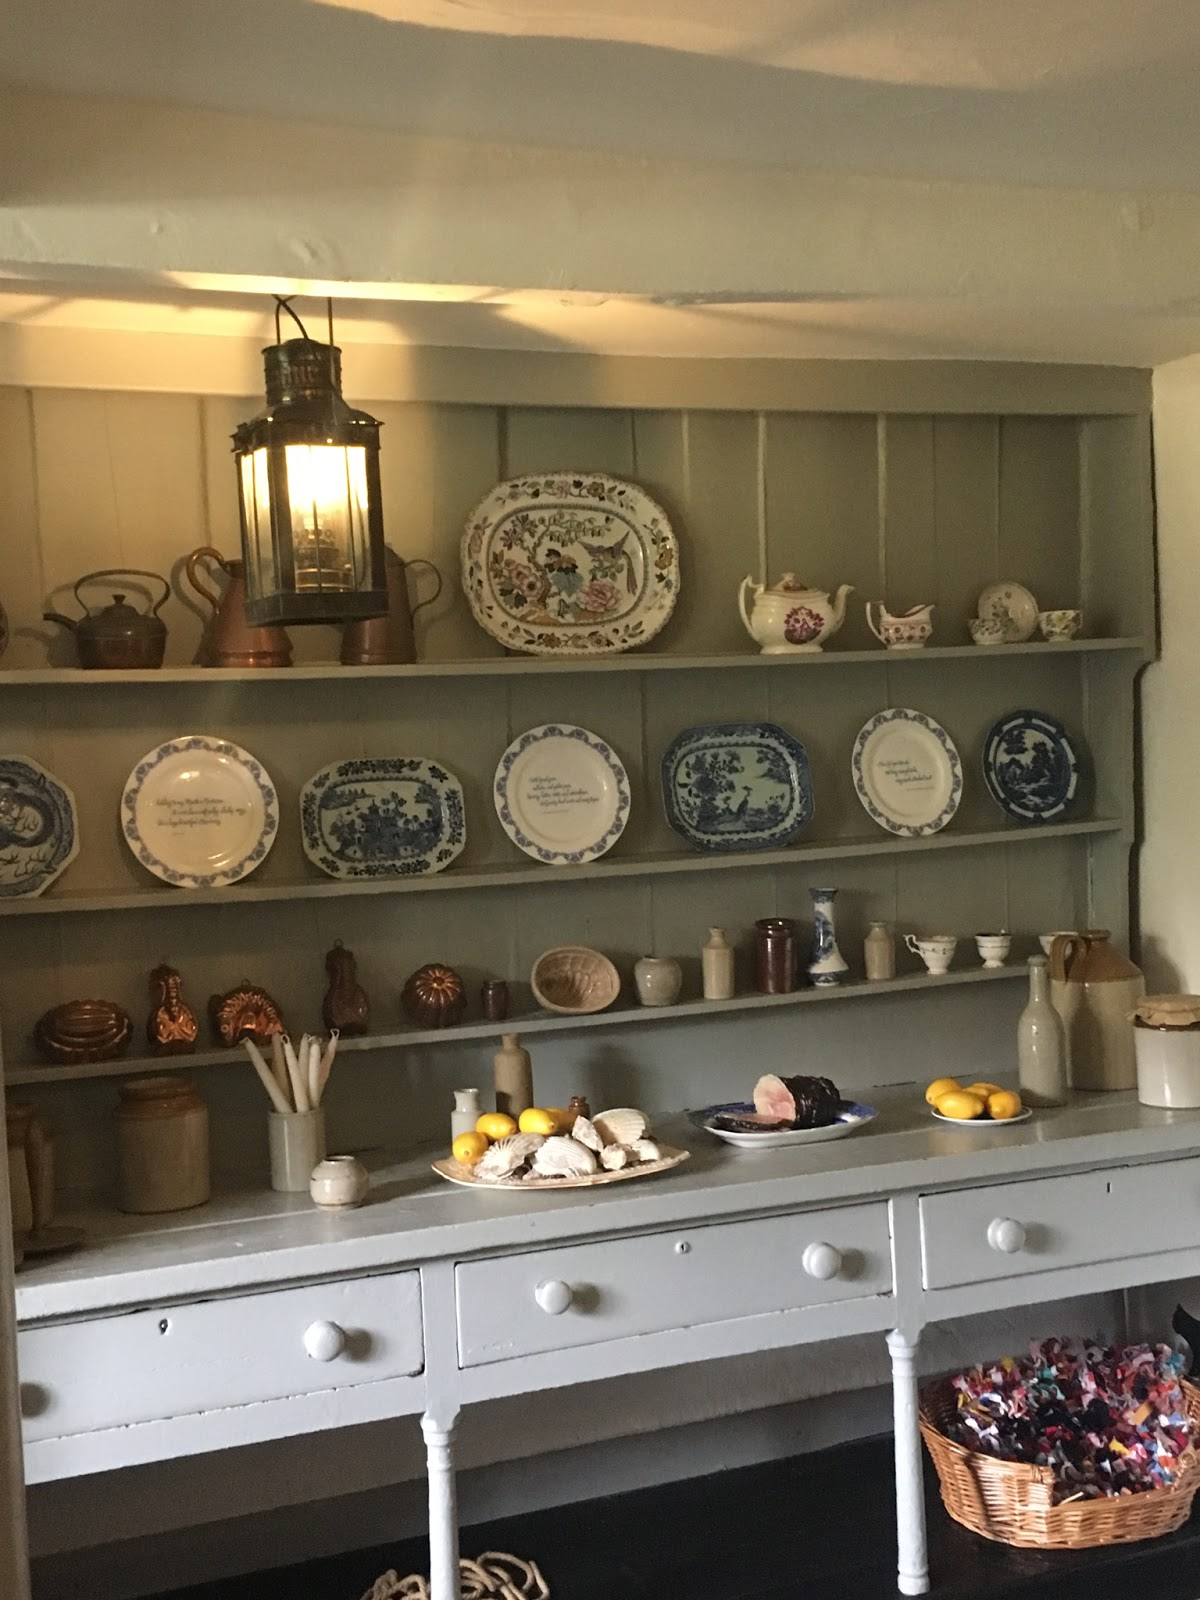 Kitchen at the Keats House, Hampstead